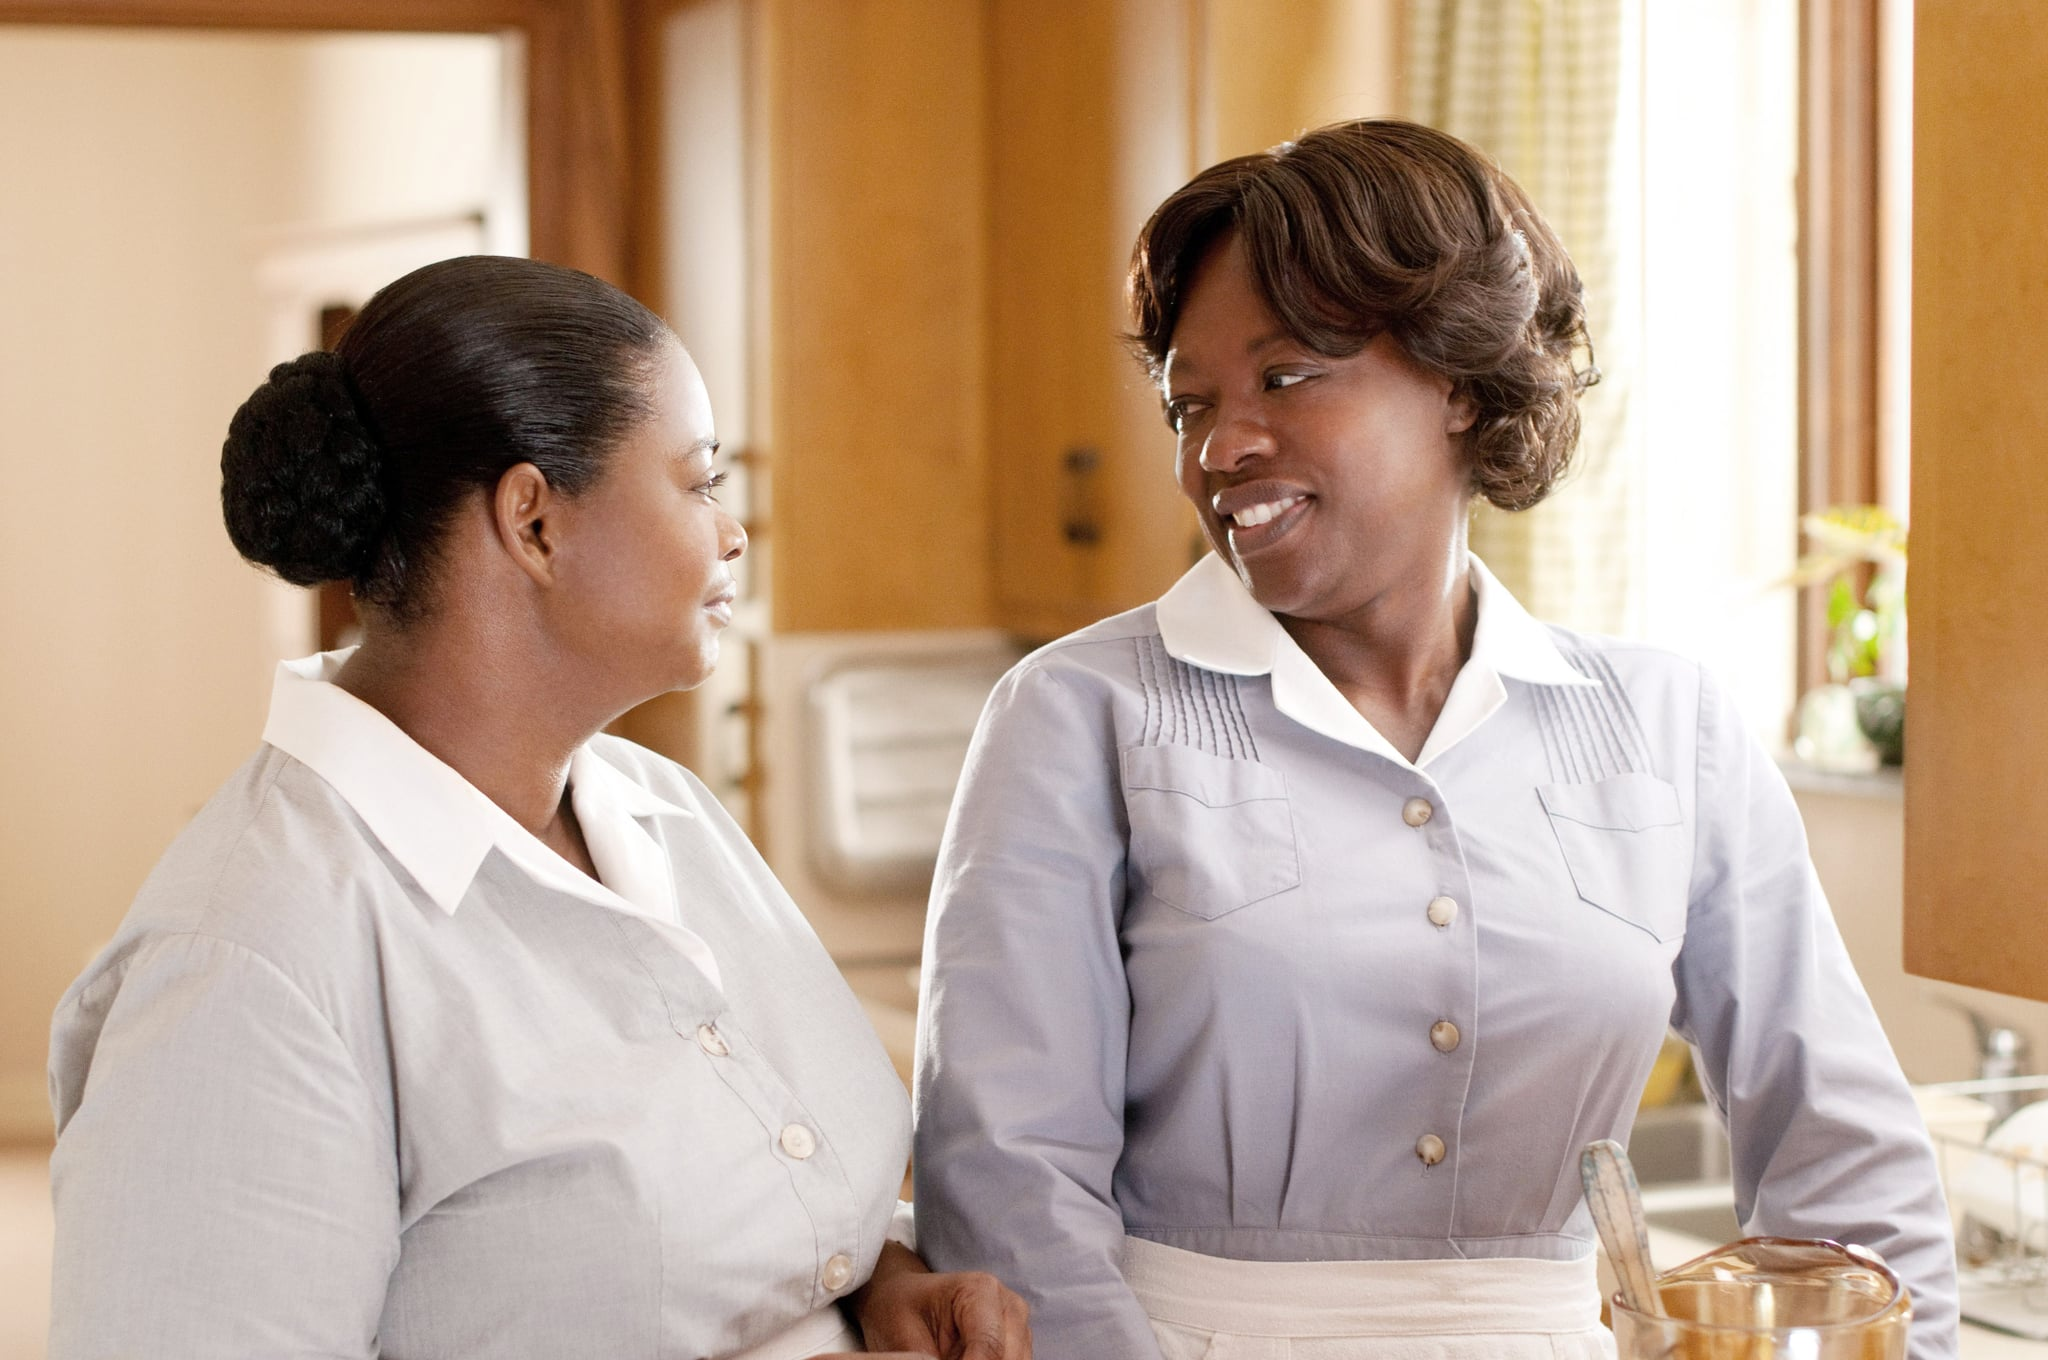 THE HELP, from left: Octavia Spencer, Viola Davis, 2011. ph: Dale Robinette/Walt Disney Studios Motion Pictures/Courtesy Everett Collection